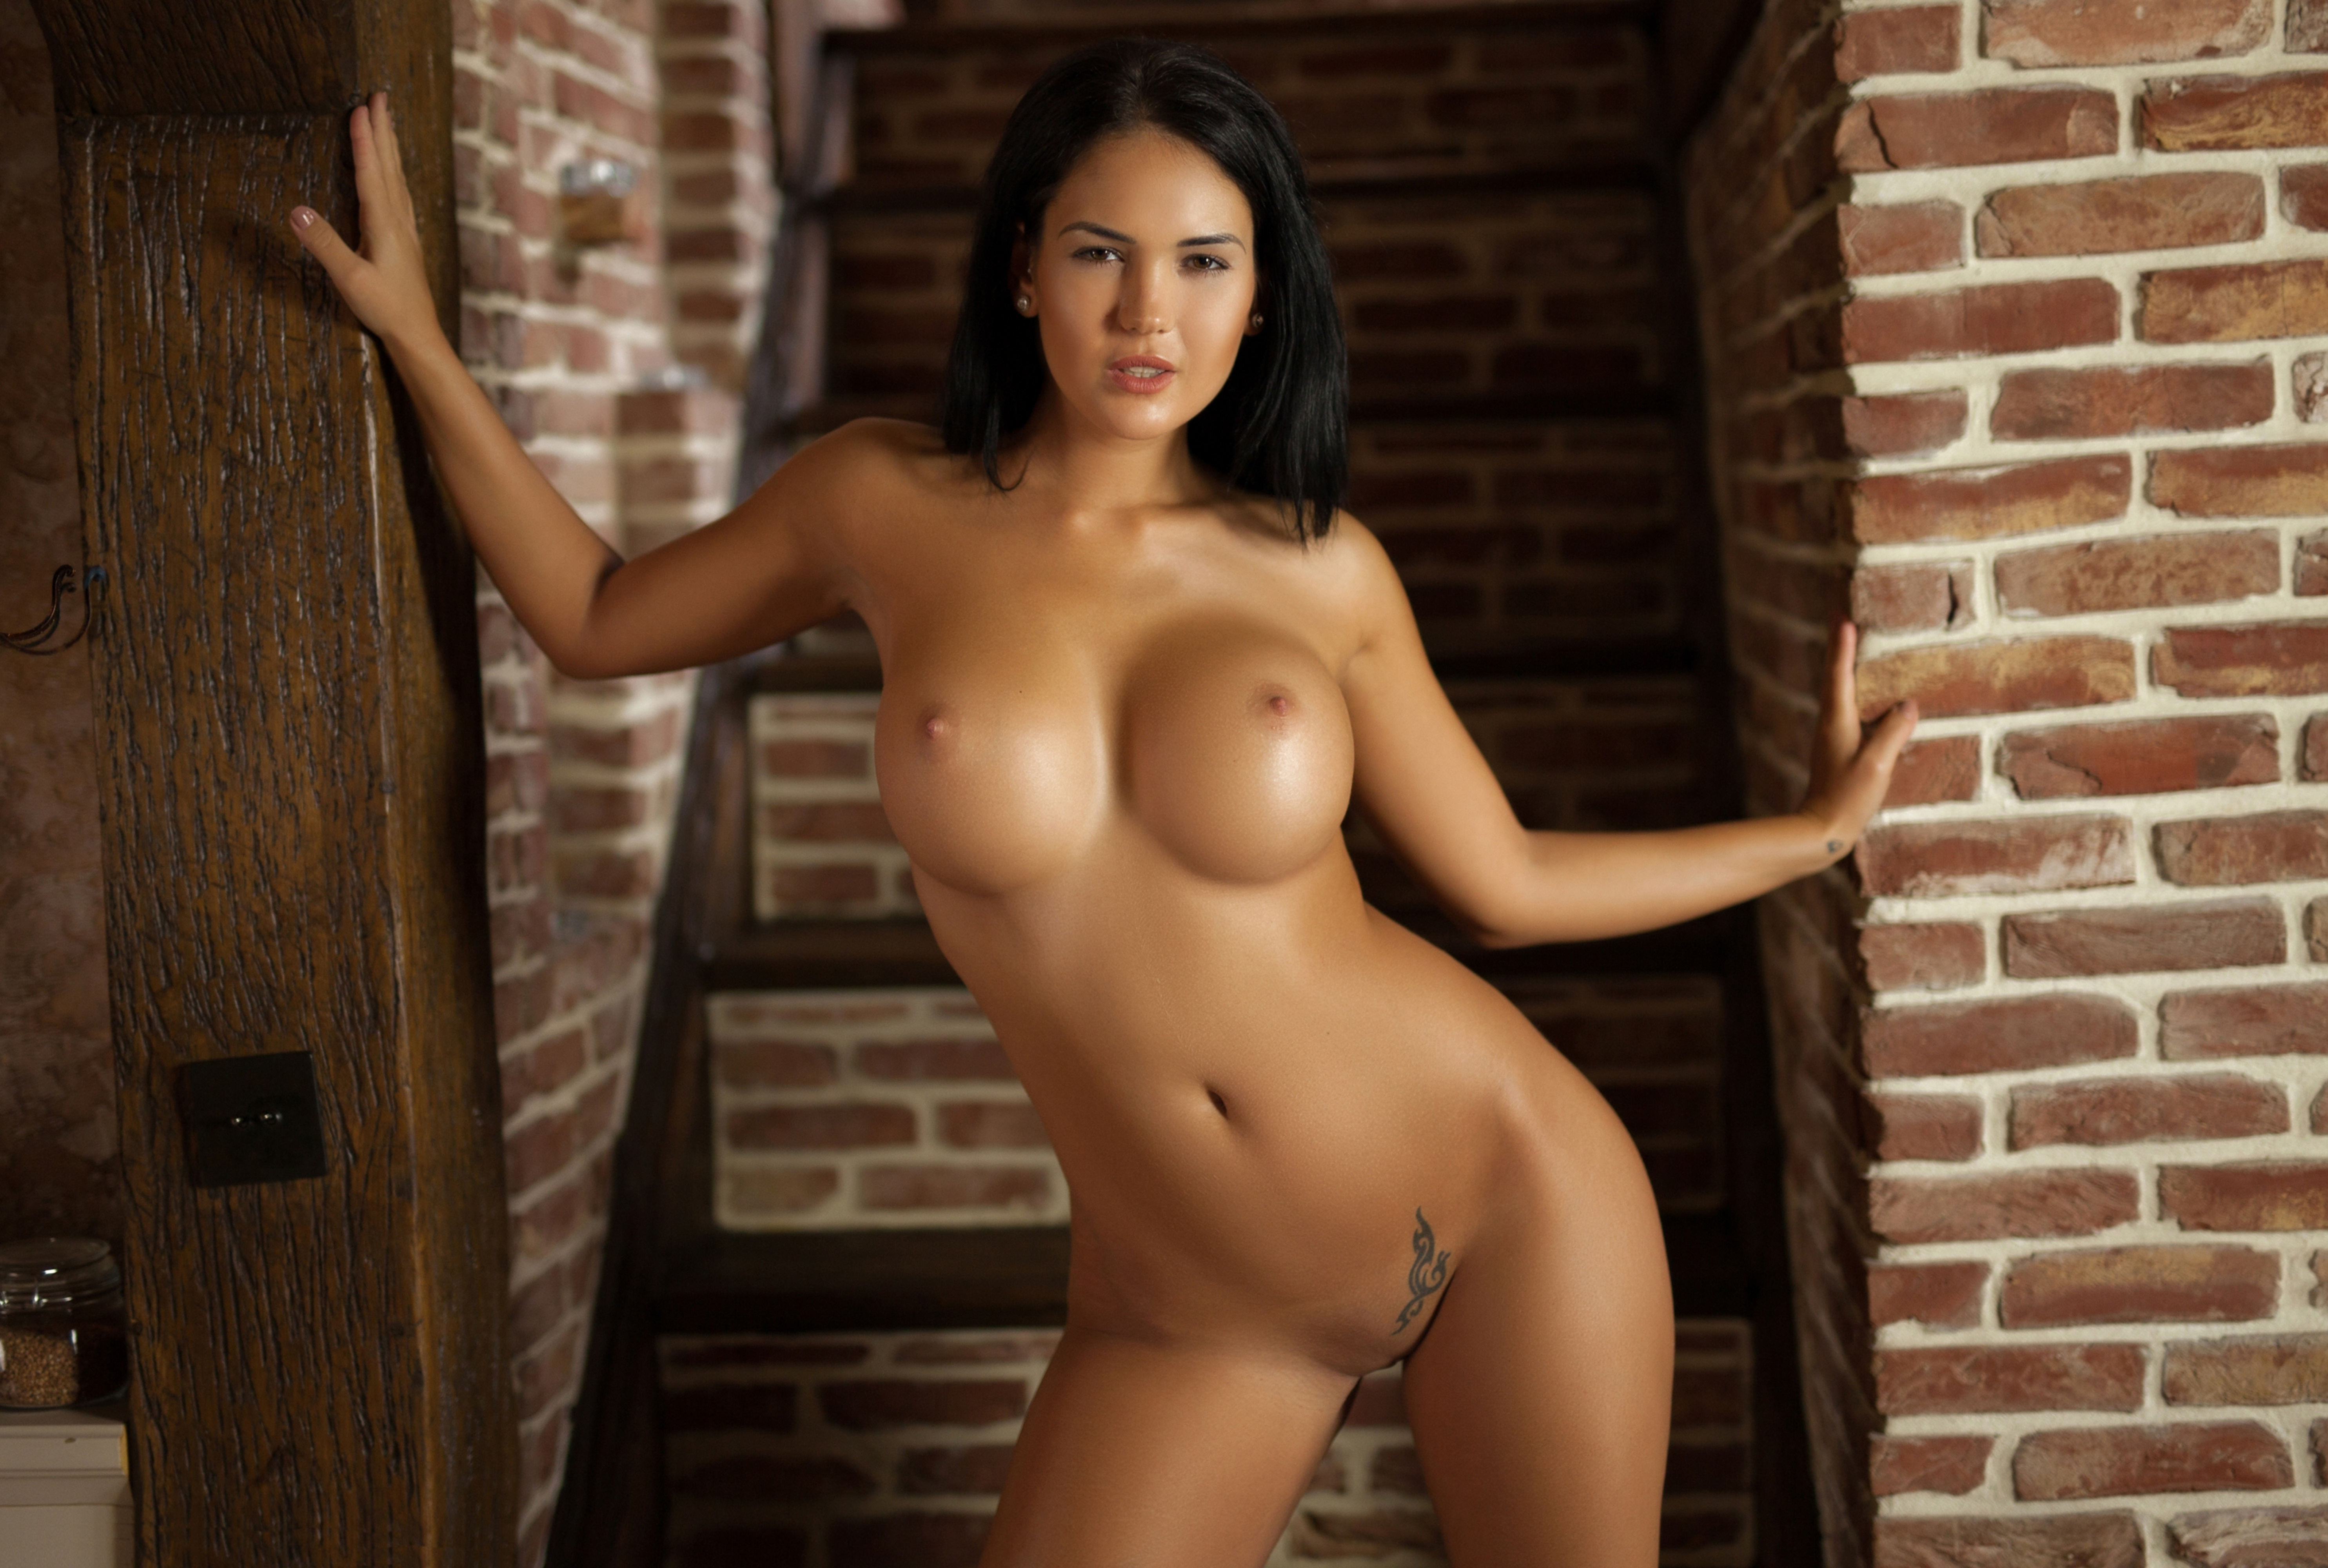 Seems me, perfect girl naked xxx remarkable